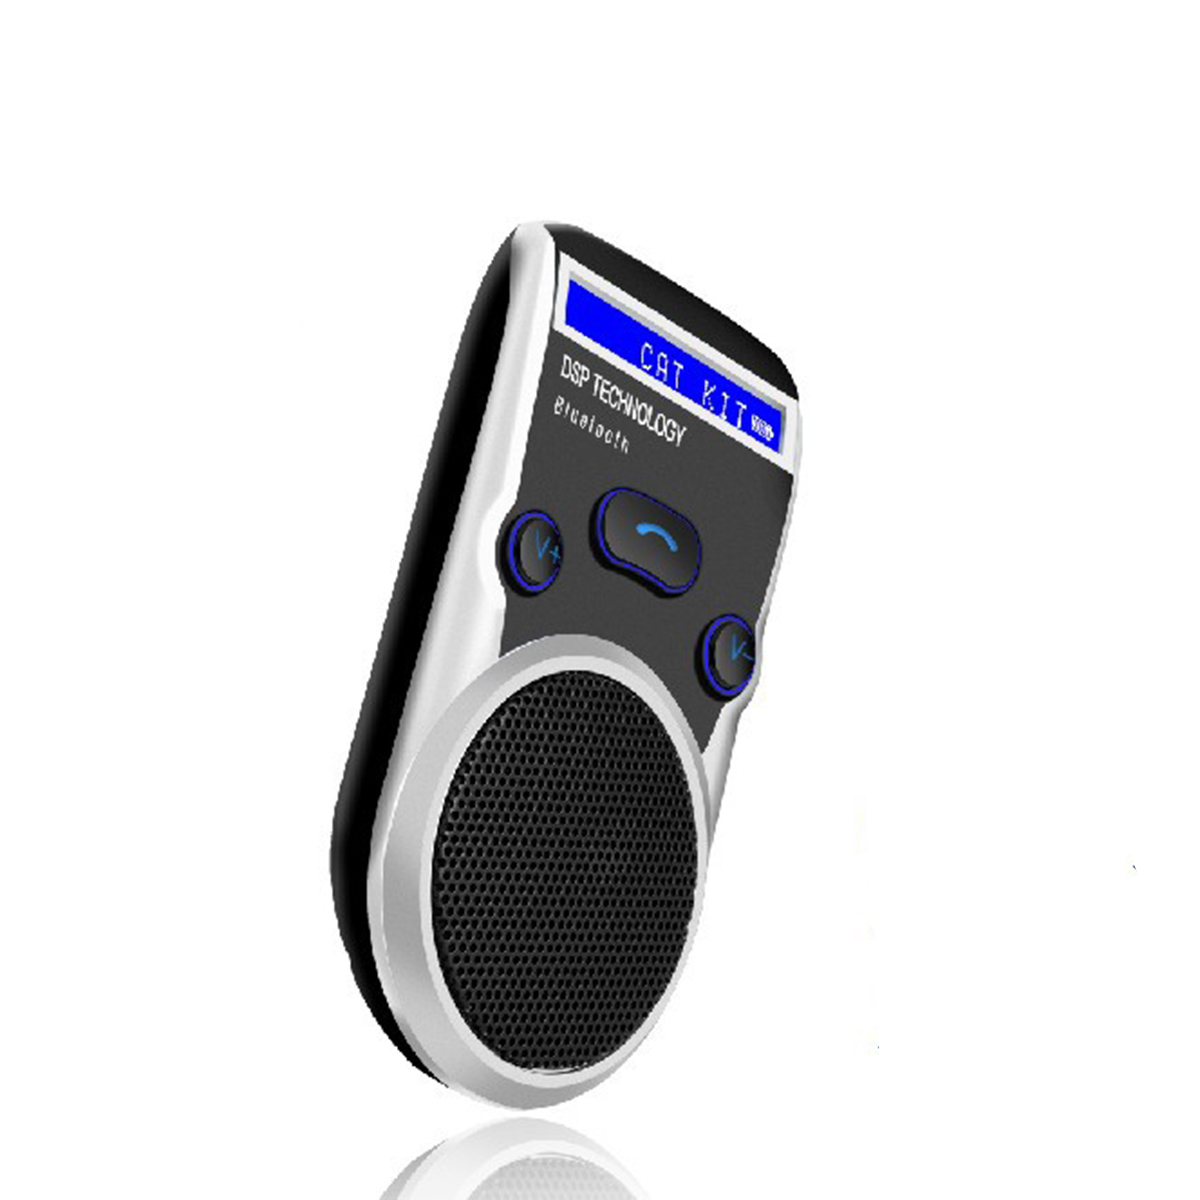 FM Bluetooth Car Kit Sun Visor Hands Free Speakerphone Speaker For Cellphone Compatible With Most Bluetooth-Enabled Mobile Phone